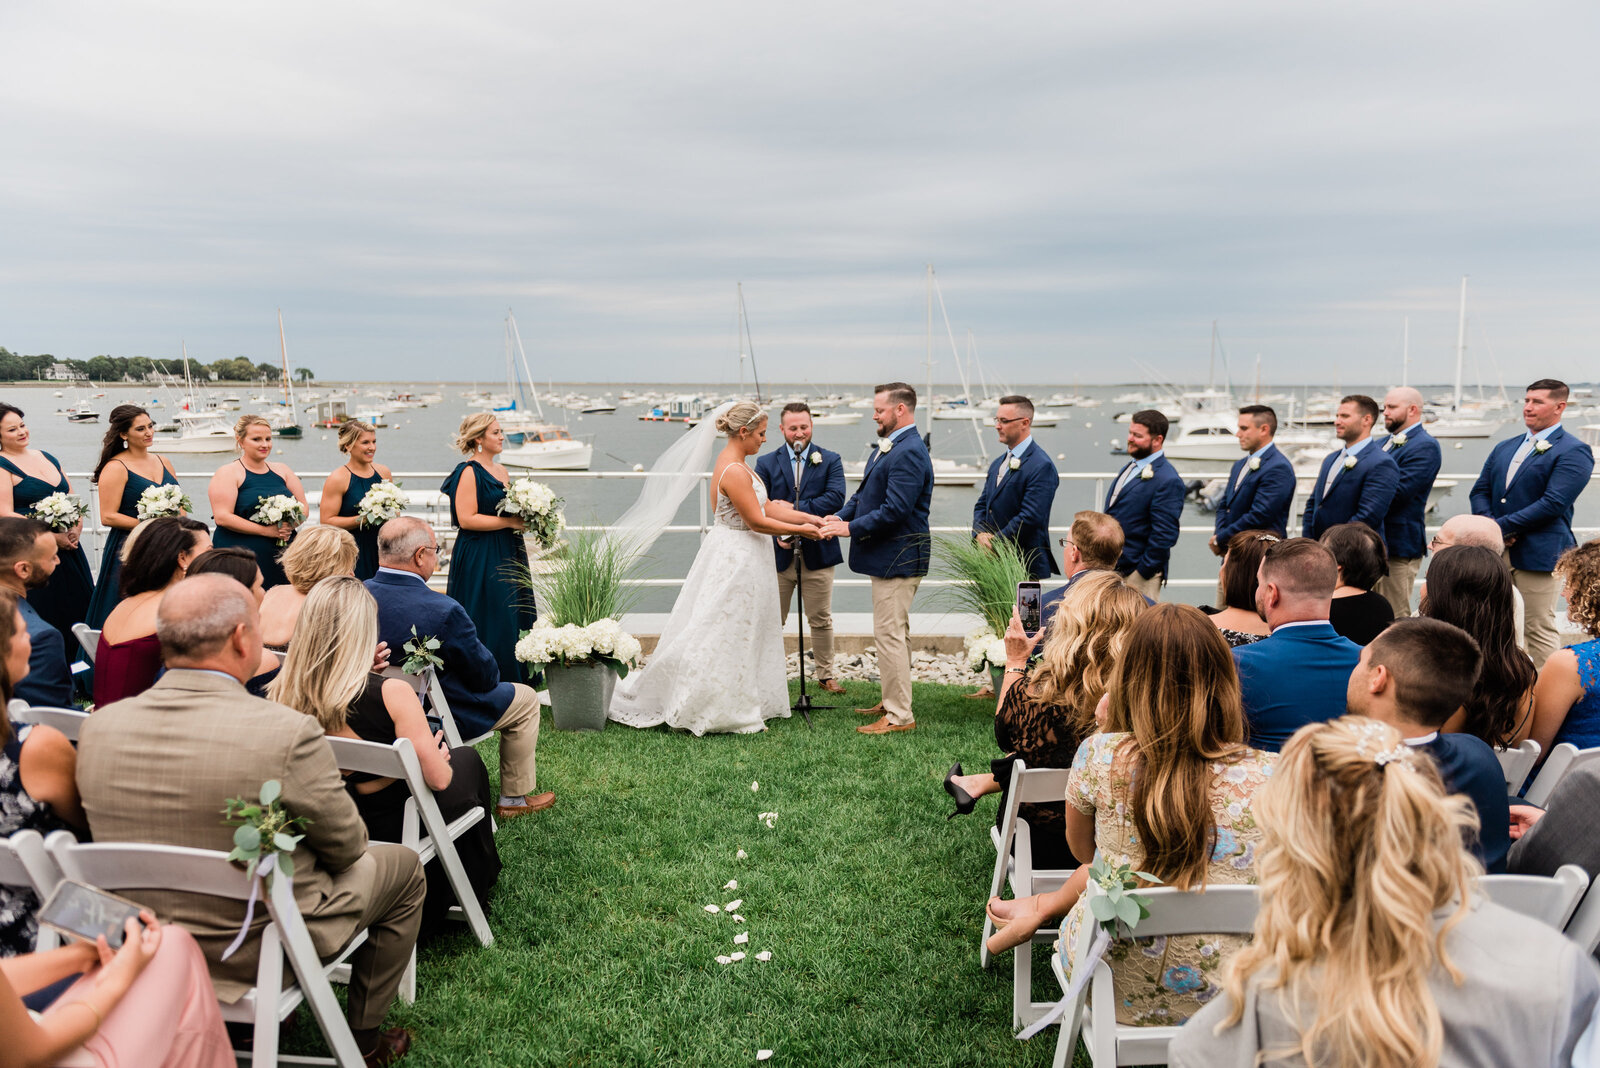 wedding ceremony on the lawn overlooking the water at the duxbury bay maritime school